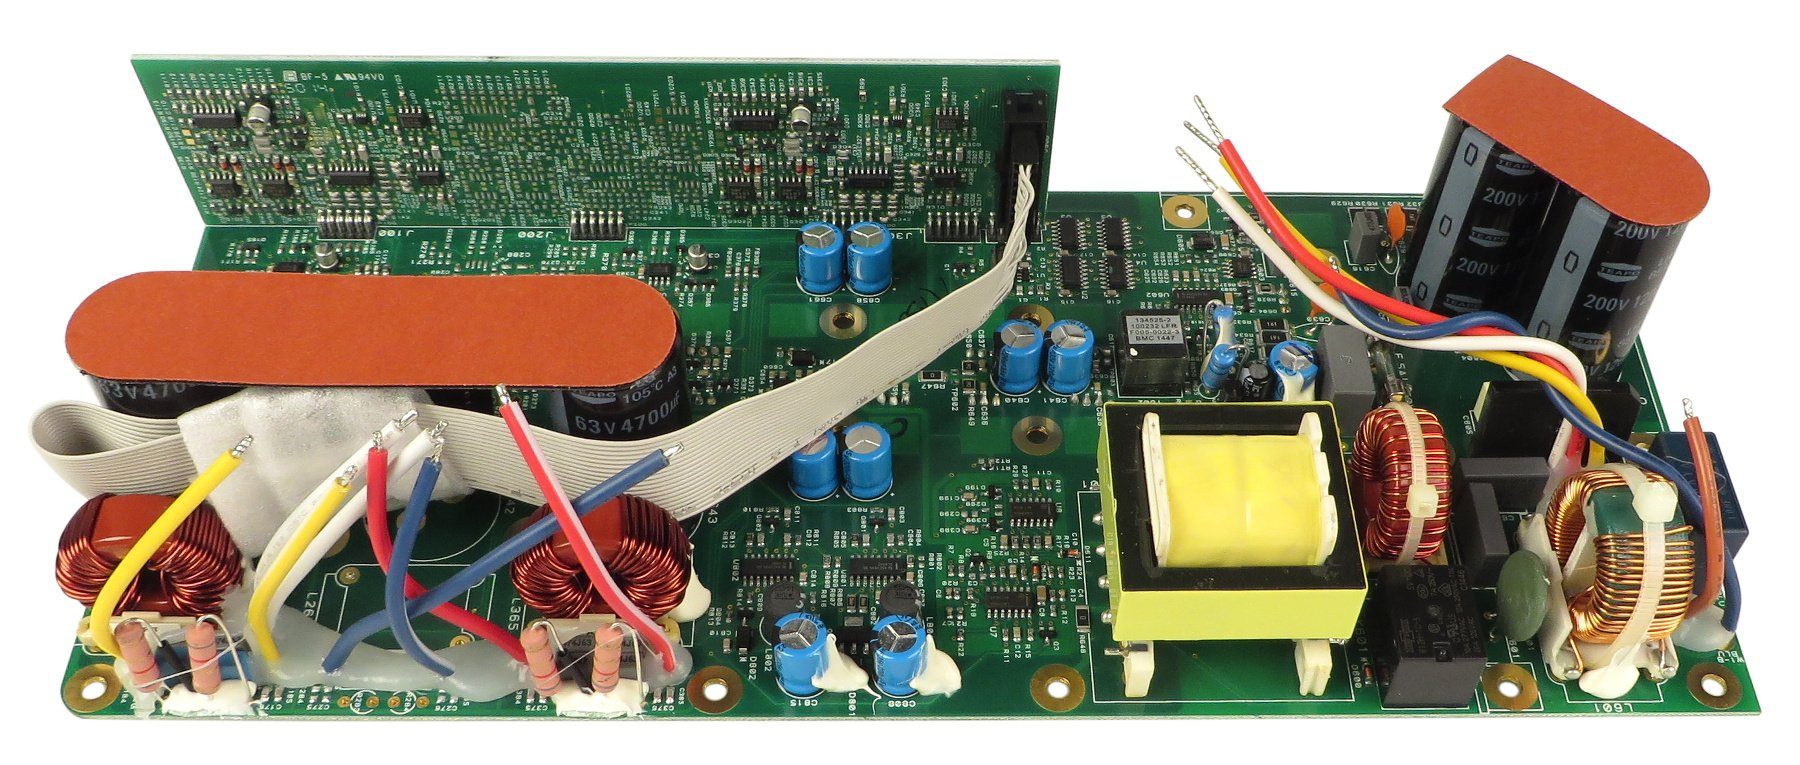 JBL 445211-002 Amp PCB Assembly for PRX612M and PRX615M 445211-002